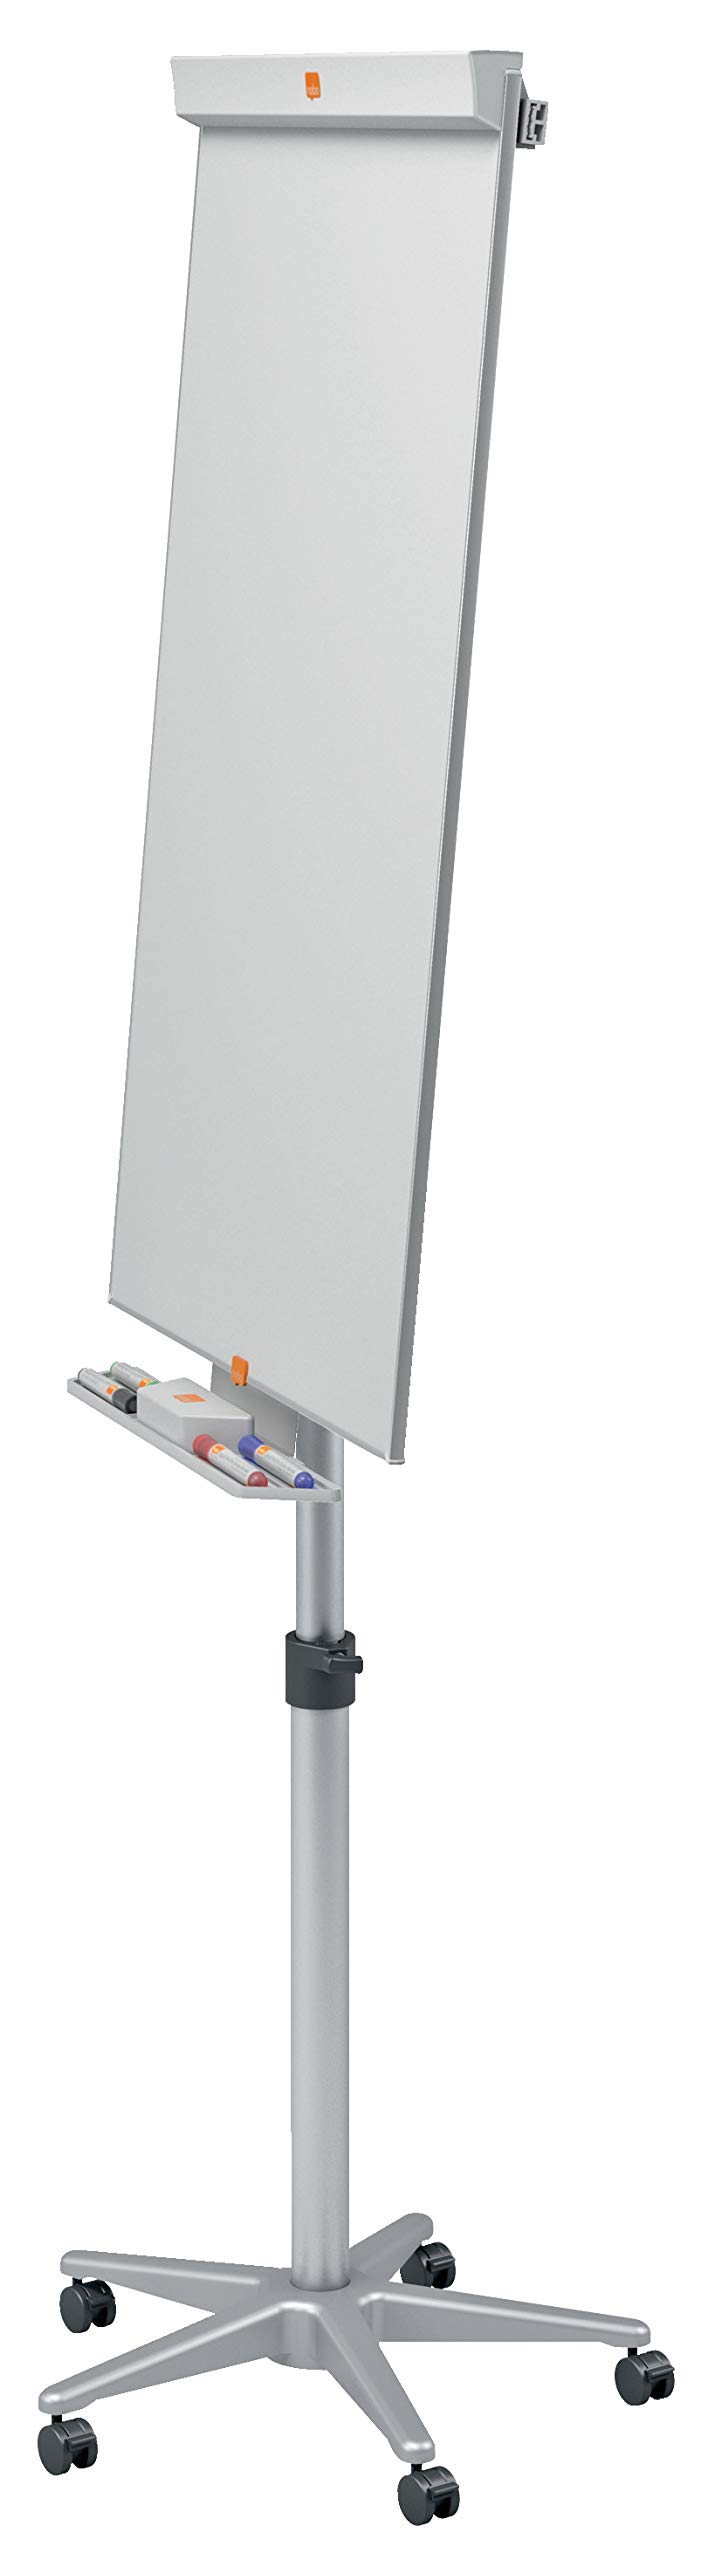 Nobo 657494 Barracuda Mobile Easel Whiteboard Flipchart With Magnetic And Height Adjustable 1000 X 700 Mm White Buy Online At Best Price In Uae Amazon Ae